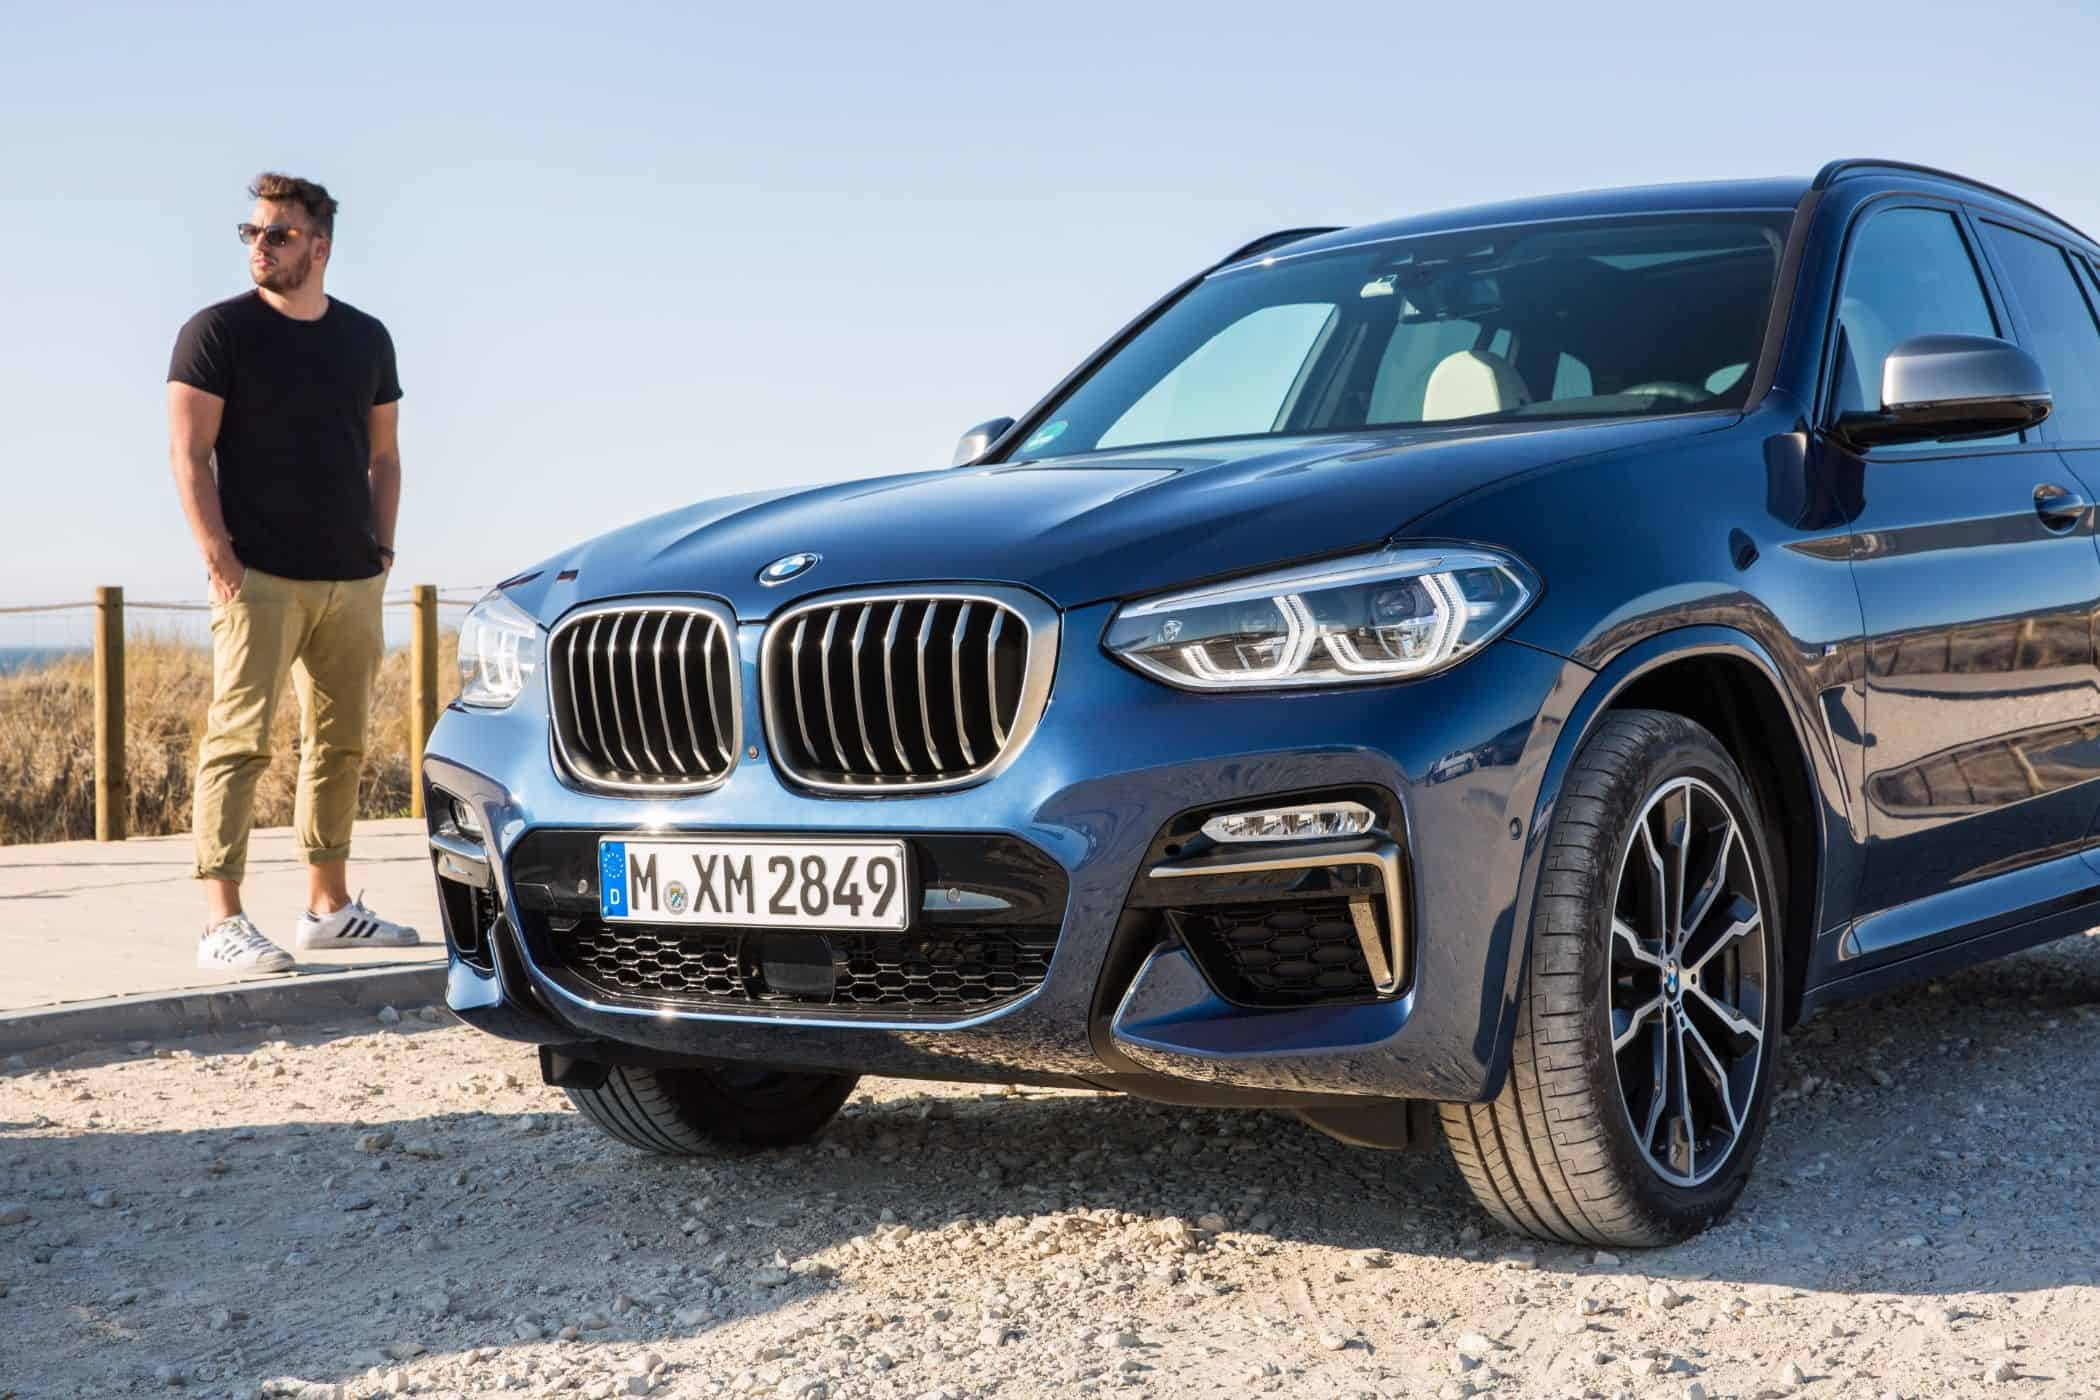 BMW X3, Jan Weizenecker